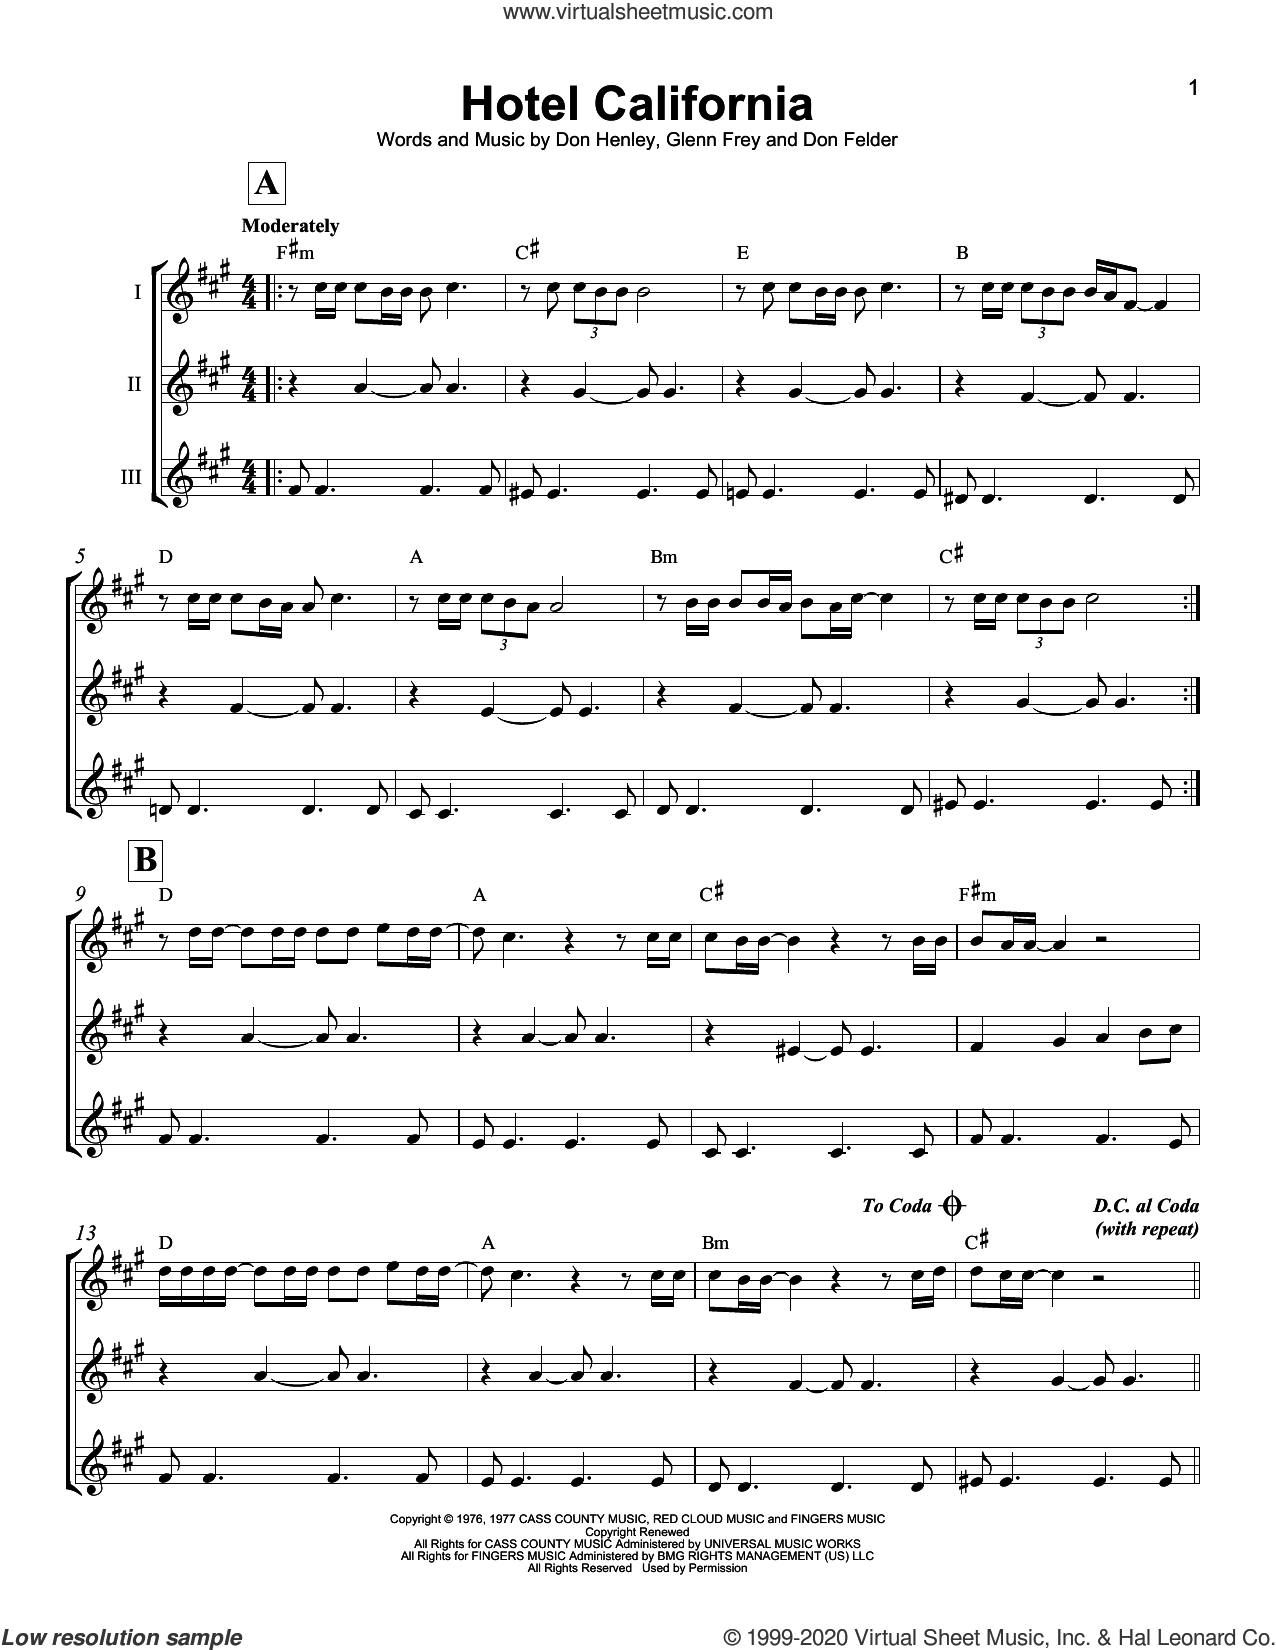 Hotel California sheet music for ukulele ensemble by Don Henley, The Eagles, Don Felder and Glenn Frey, intermediate skill level